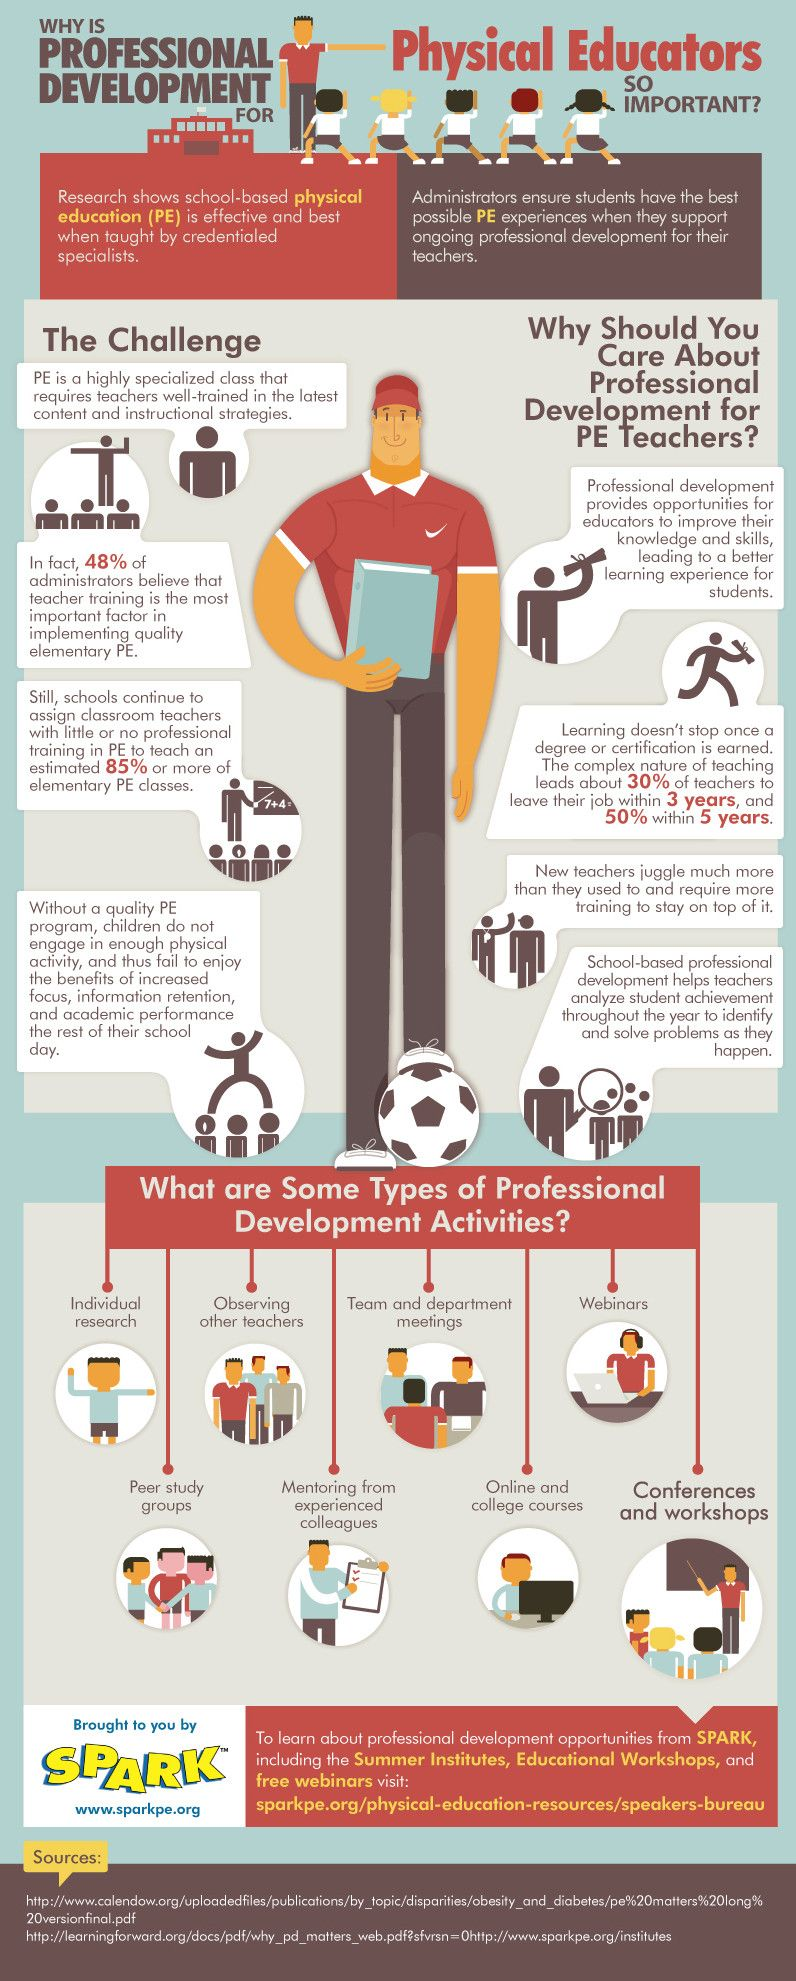 Why is Professional Development For Physical Educators So